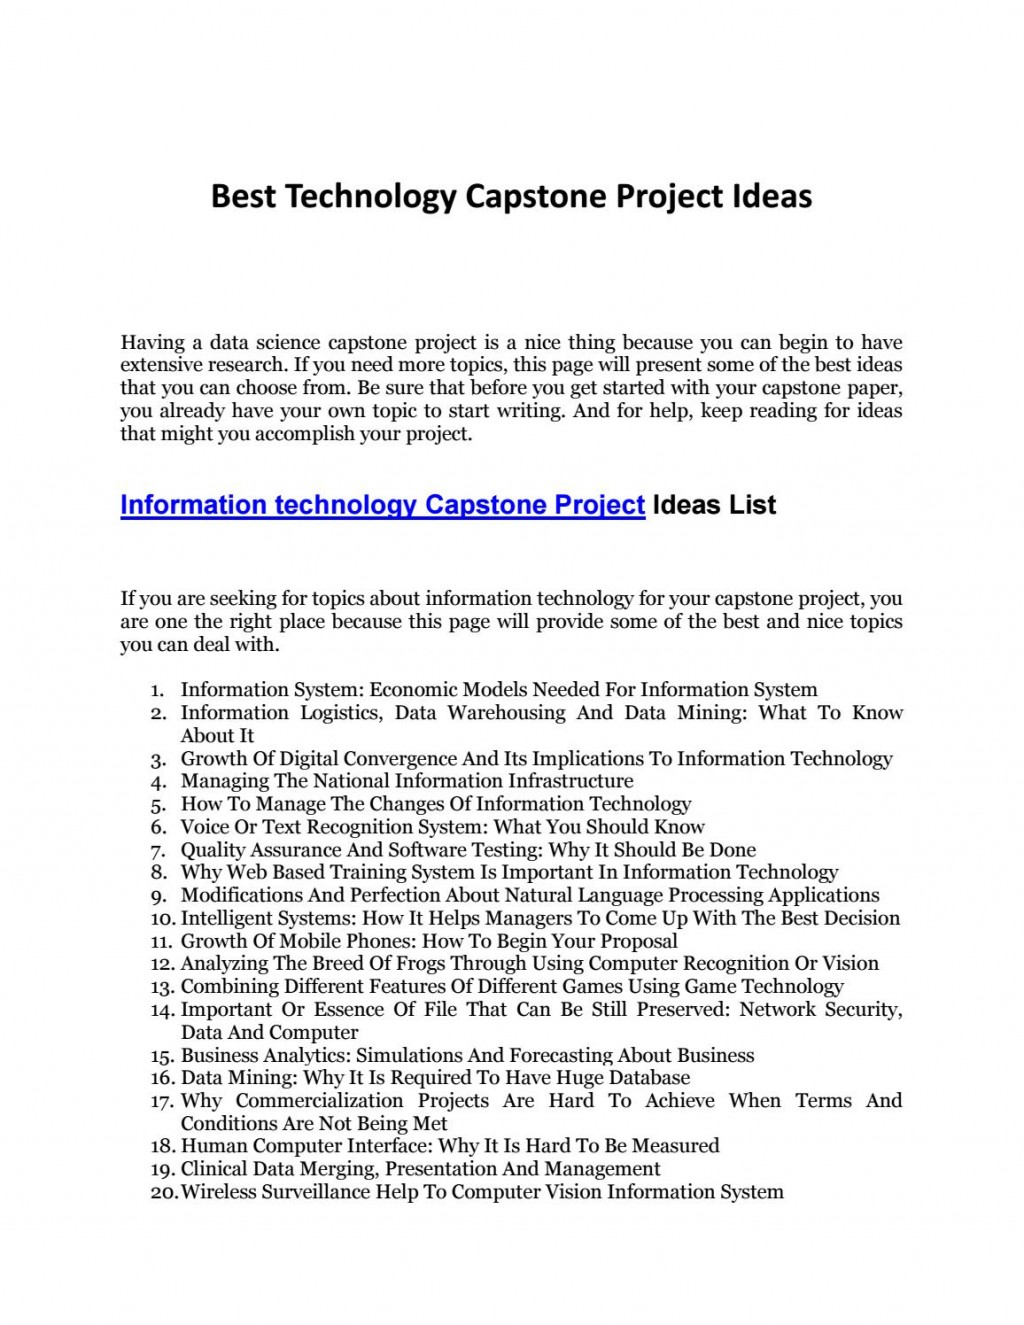 003 Best Topic For Research Paper In Technology Page 1 Shocking Information Large